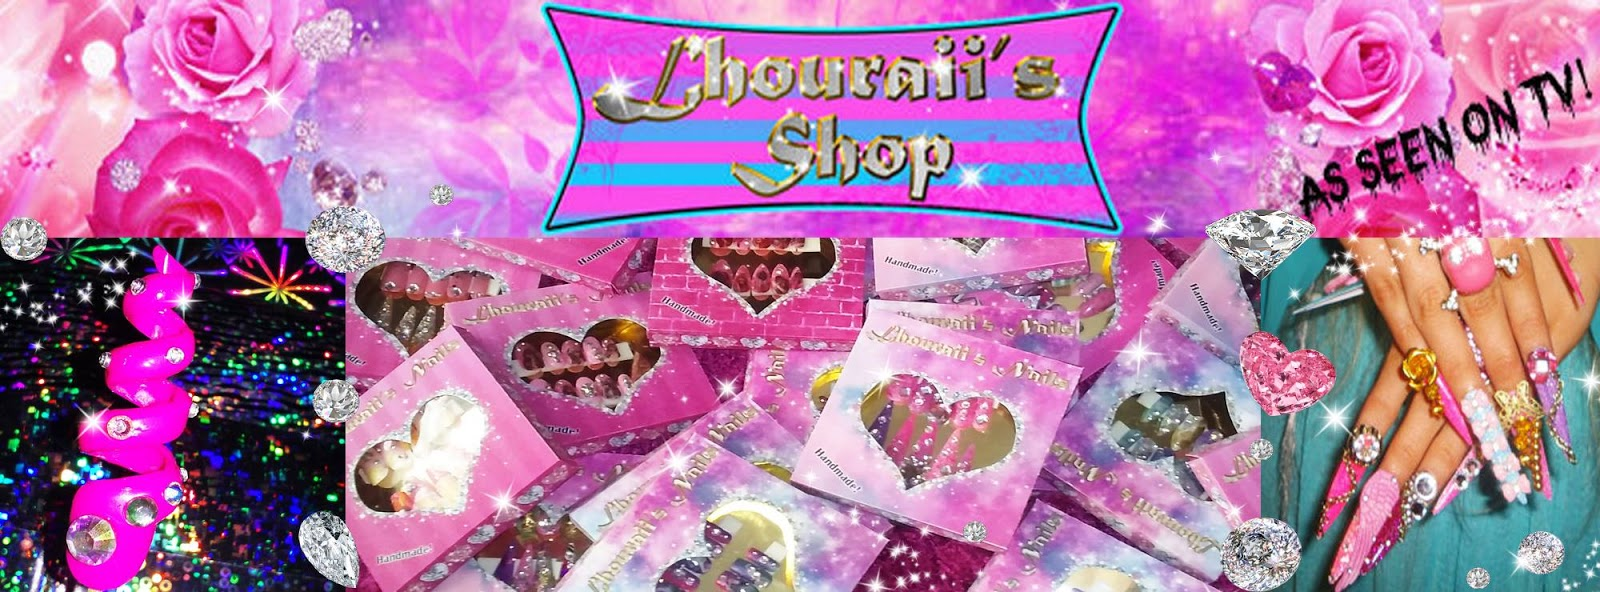 Lhouraii's Shop